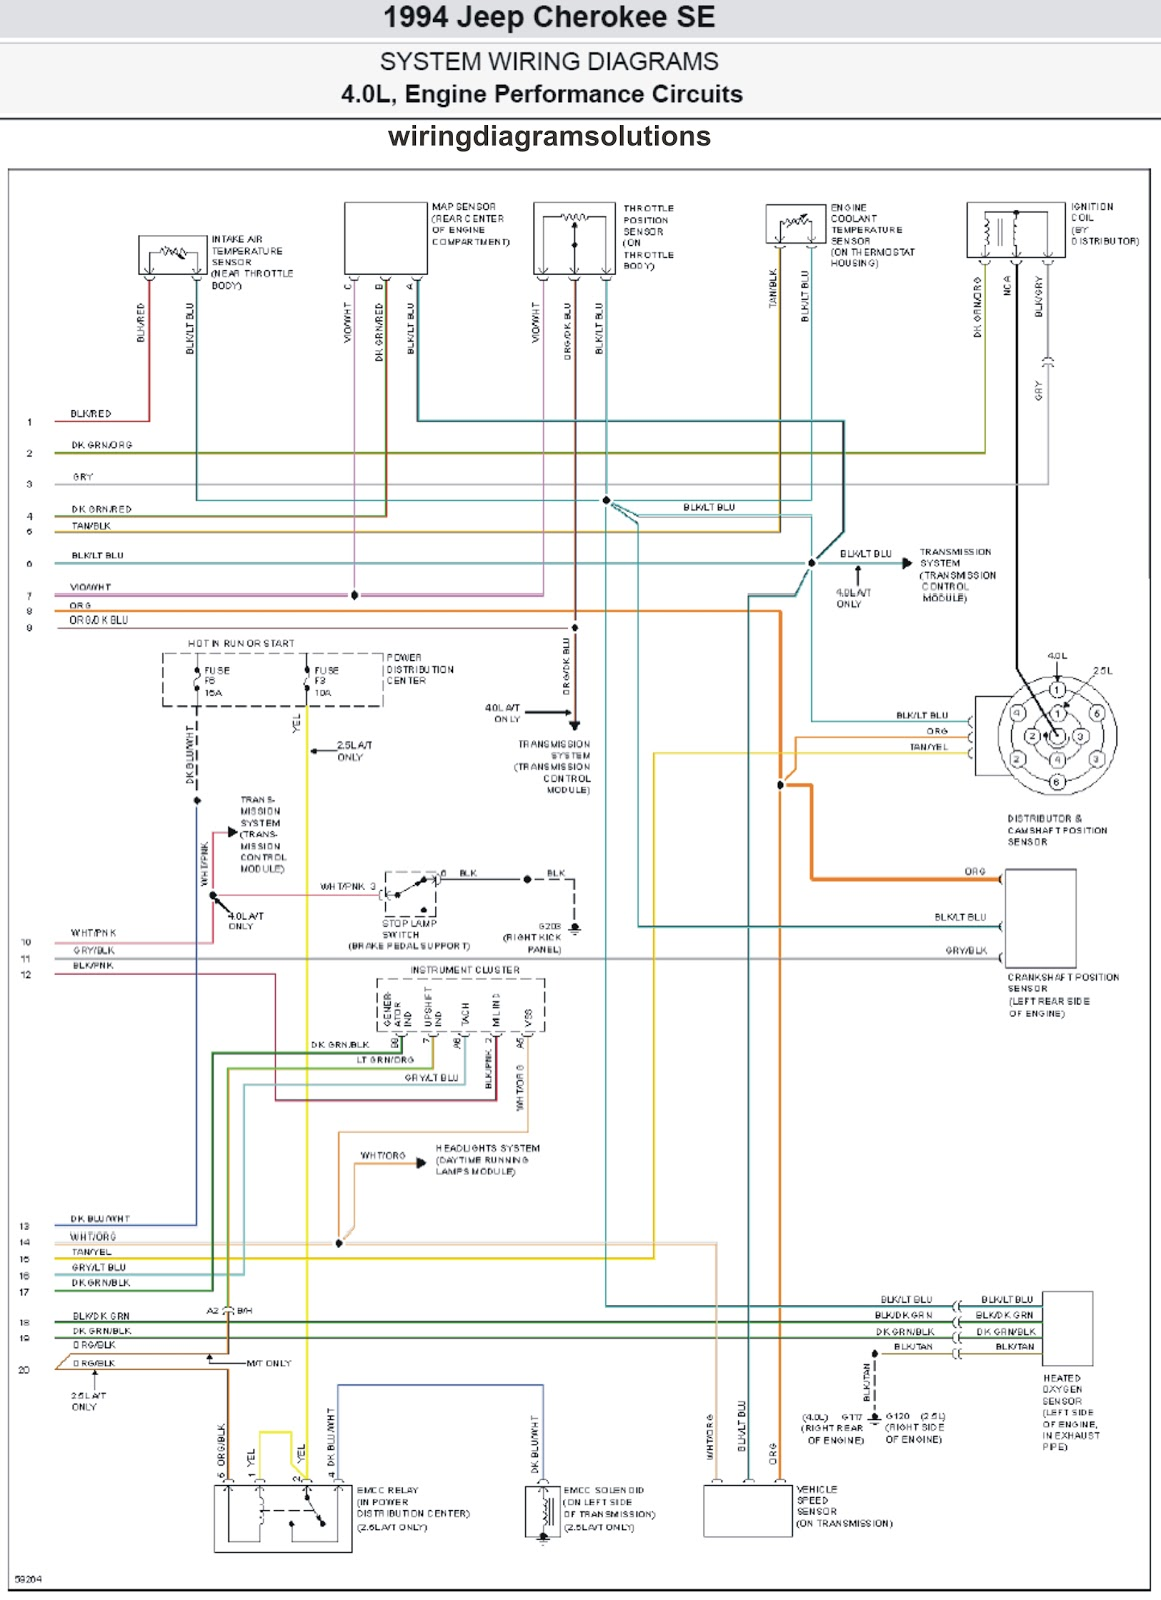 98 jeep grand cherokee engine wiring diagram 1998 jeep wrangler sport wiring diagramrh svlc [ 1161 x 1600 Pixel ]